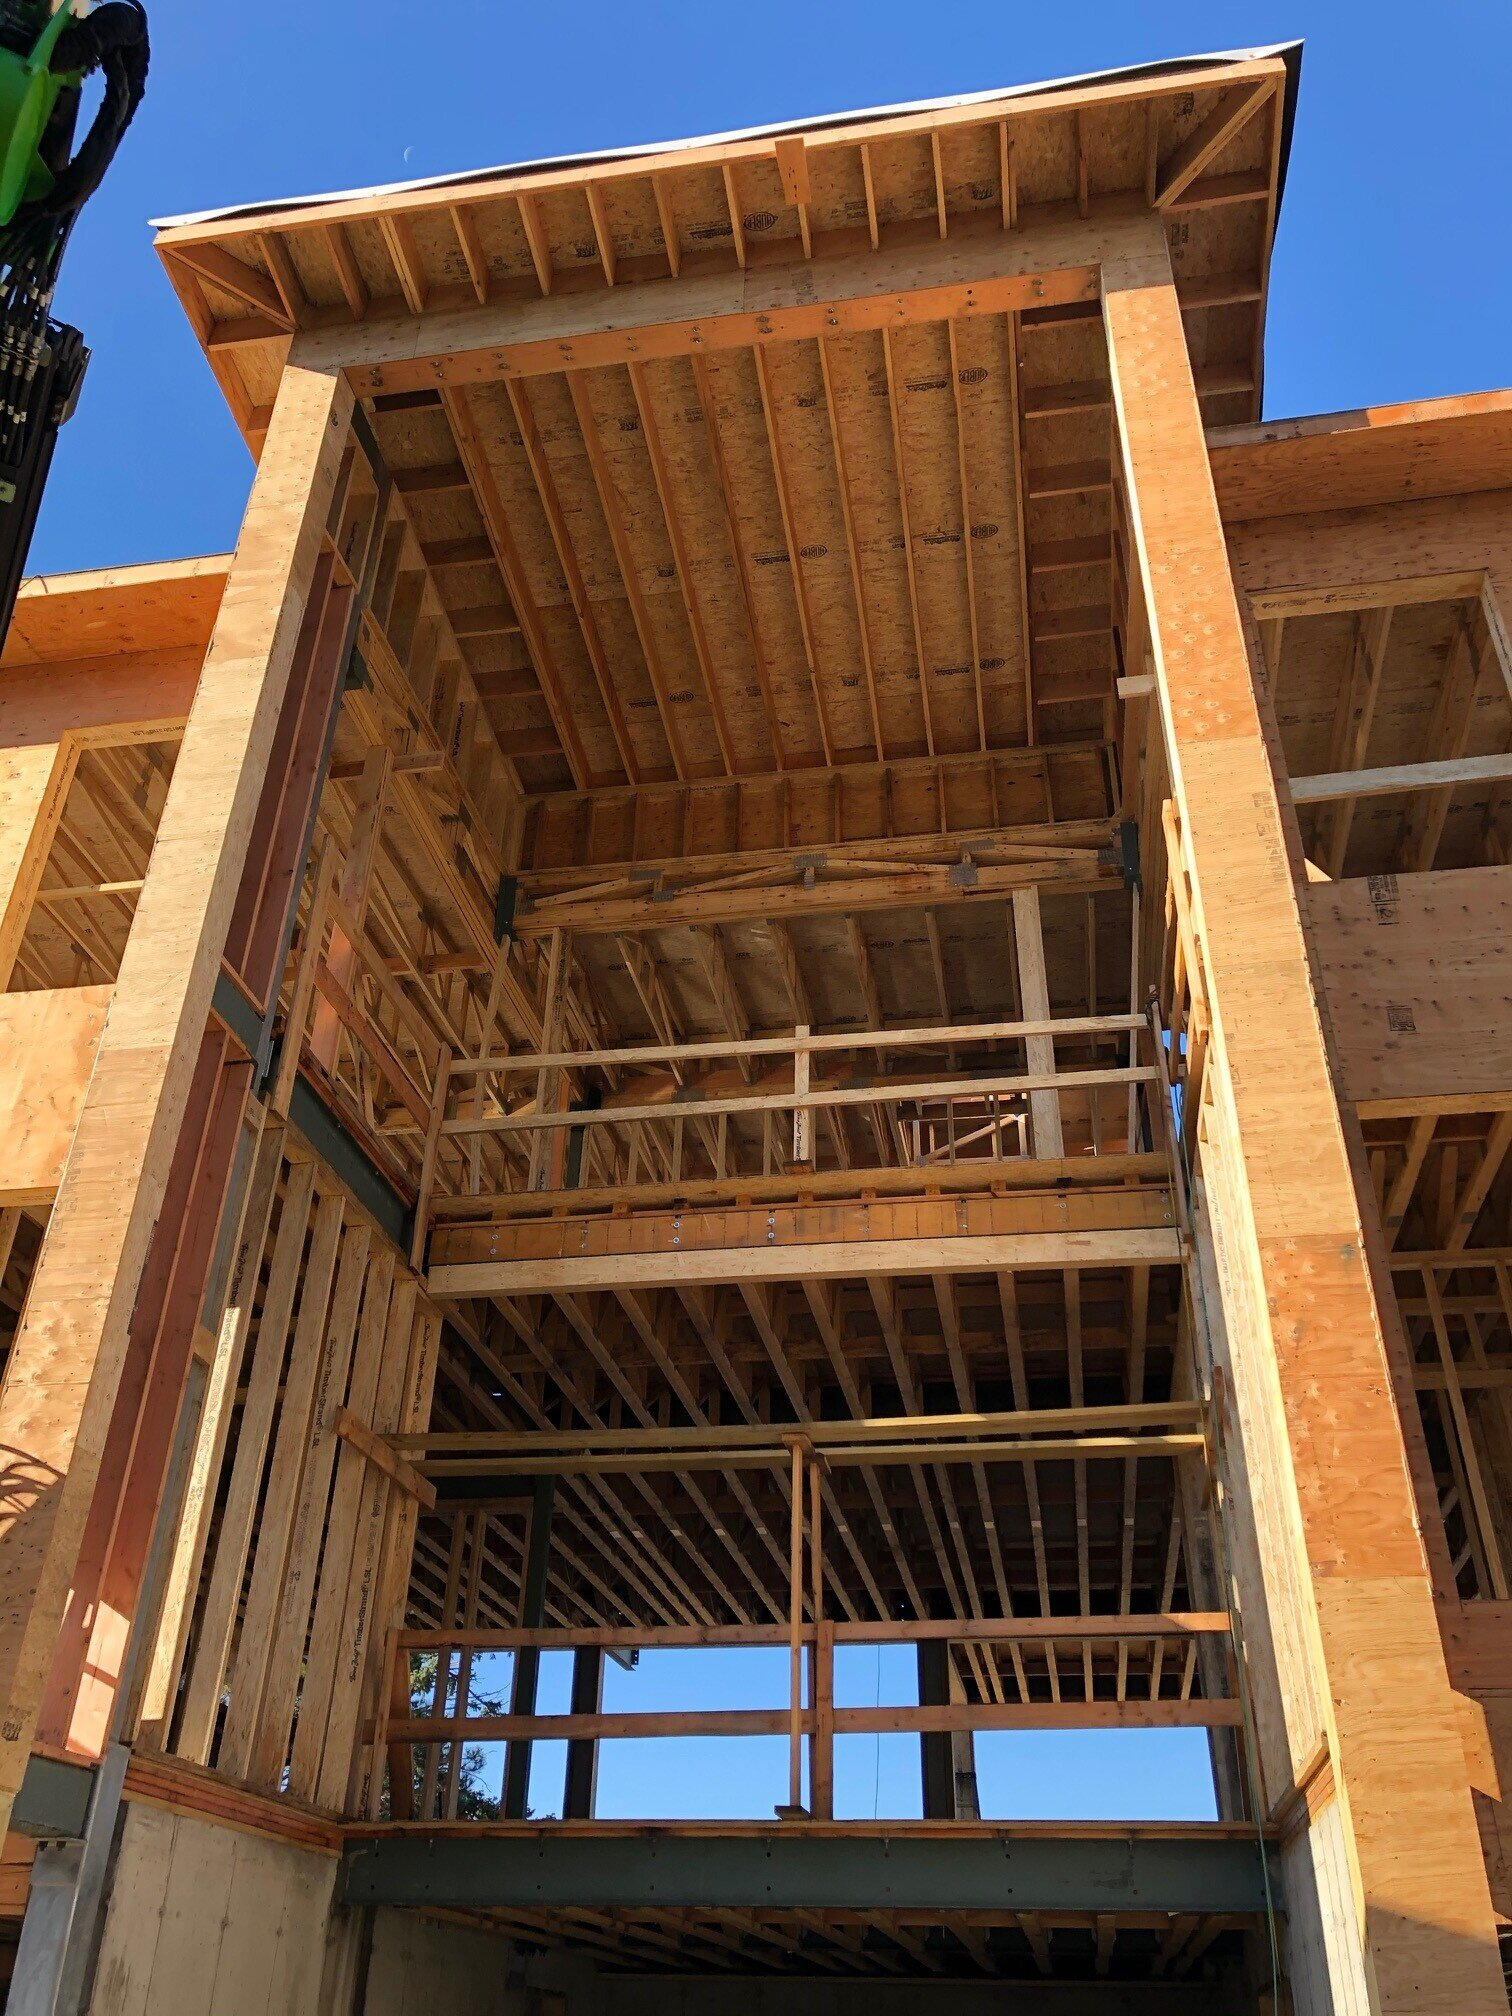 Wood framing elements installed at Osprey Point; all voids will be expanses of glass, including the face of this staircase/elevator shaft.  Image via Granoff Architects.